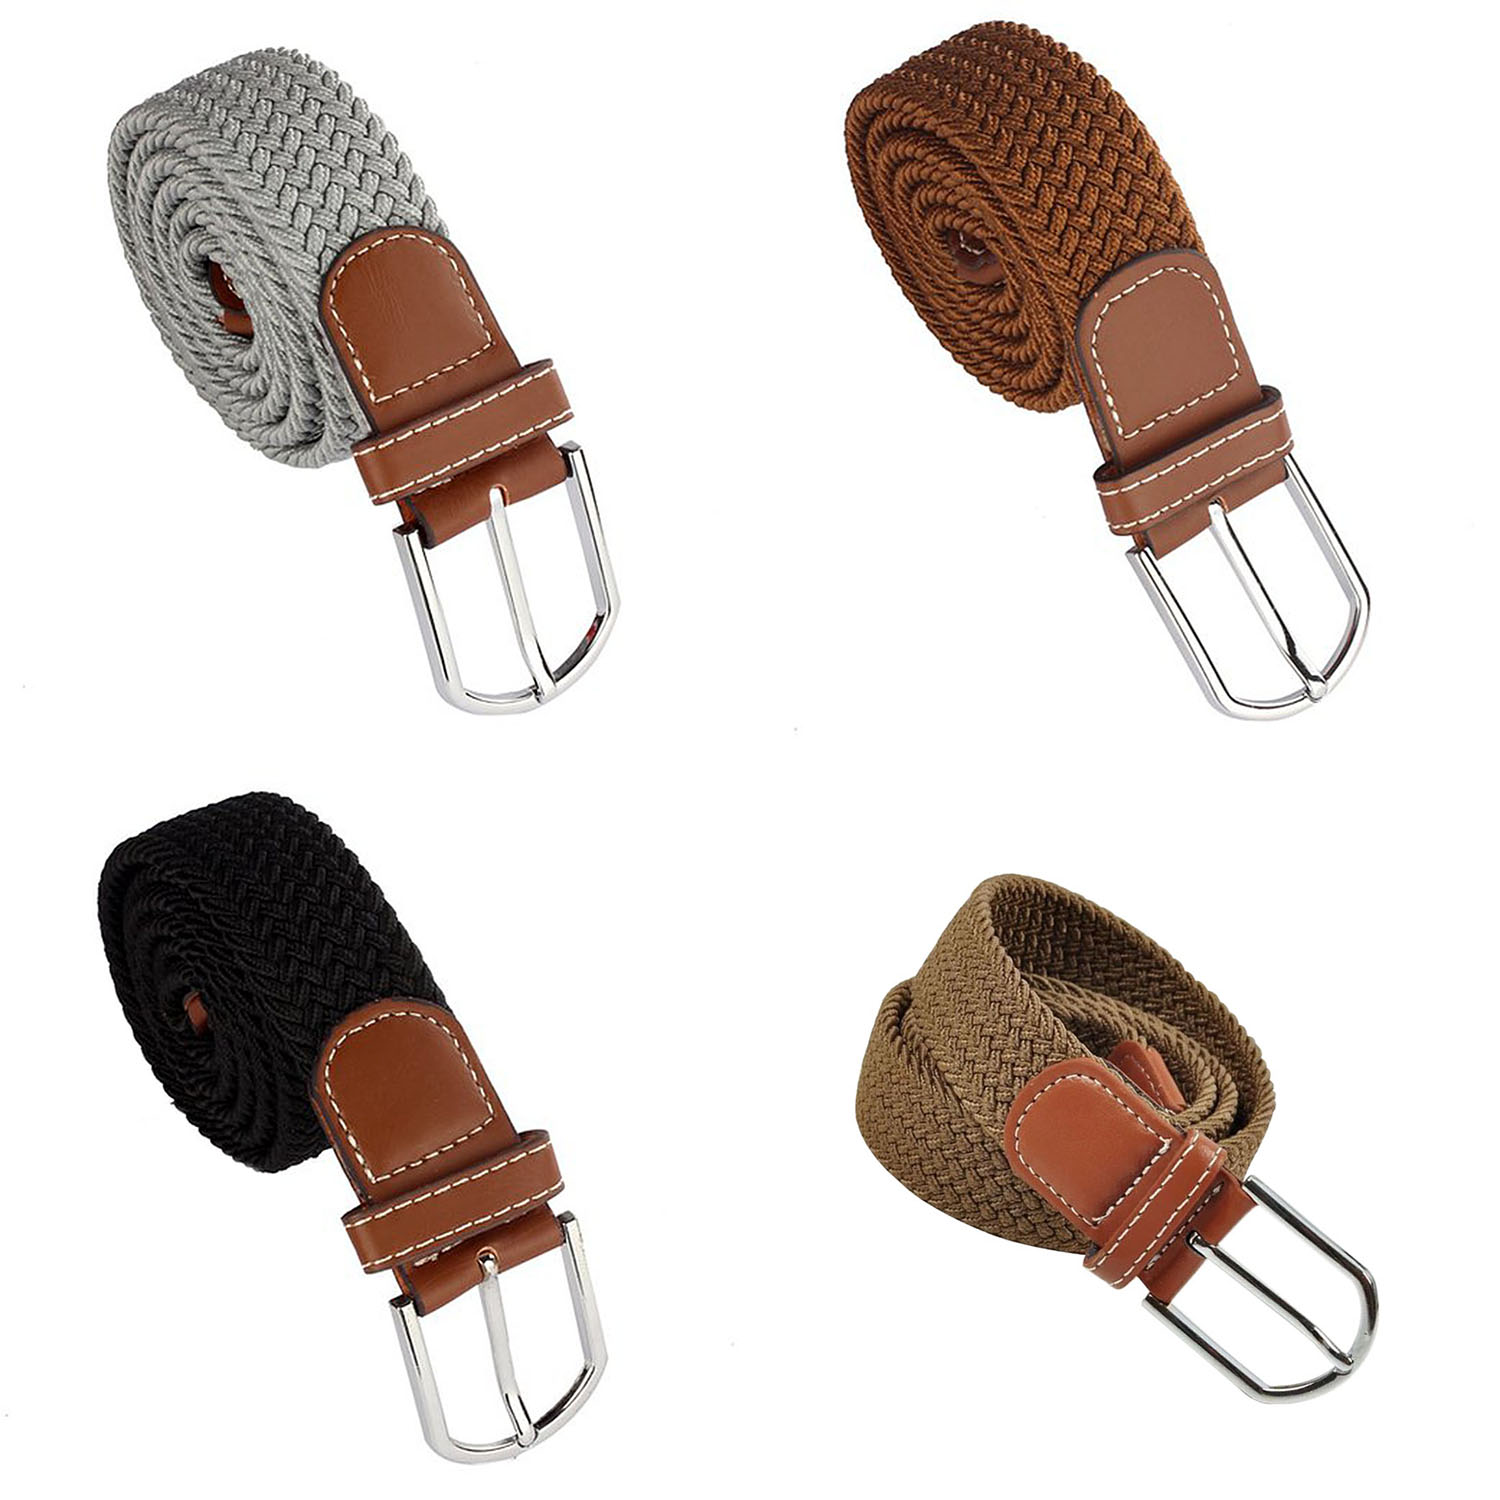 Details about 1X(Men Leather Braided Elastic Stretch Metal Buckle Belt Waistband Z7L7)